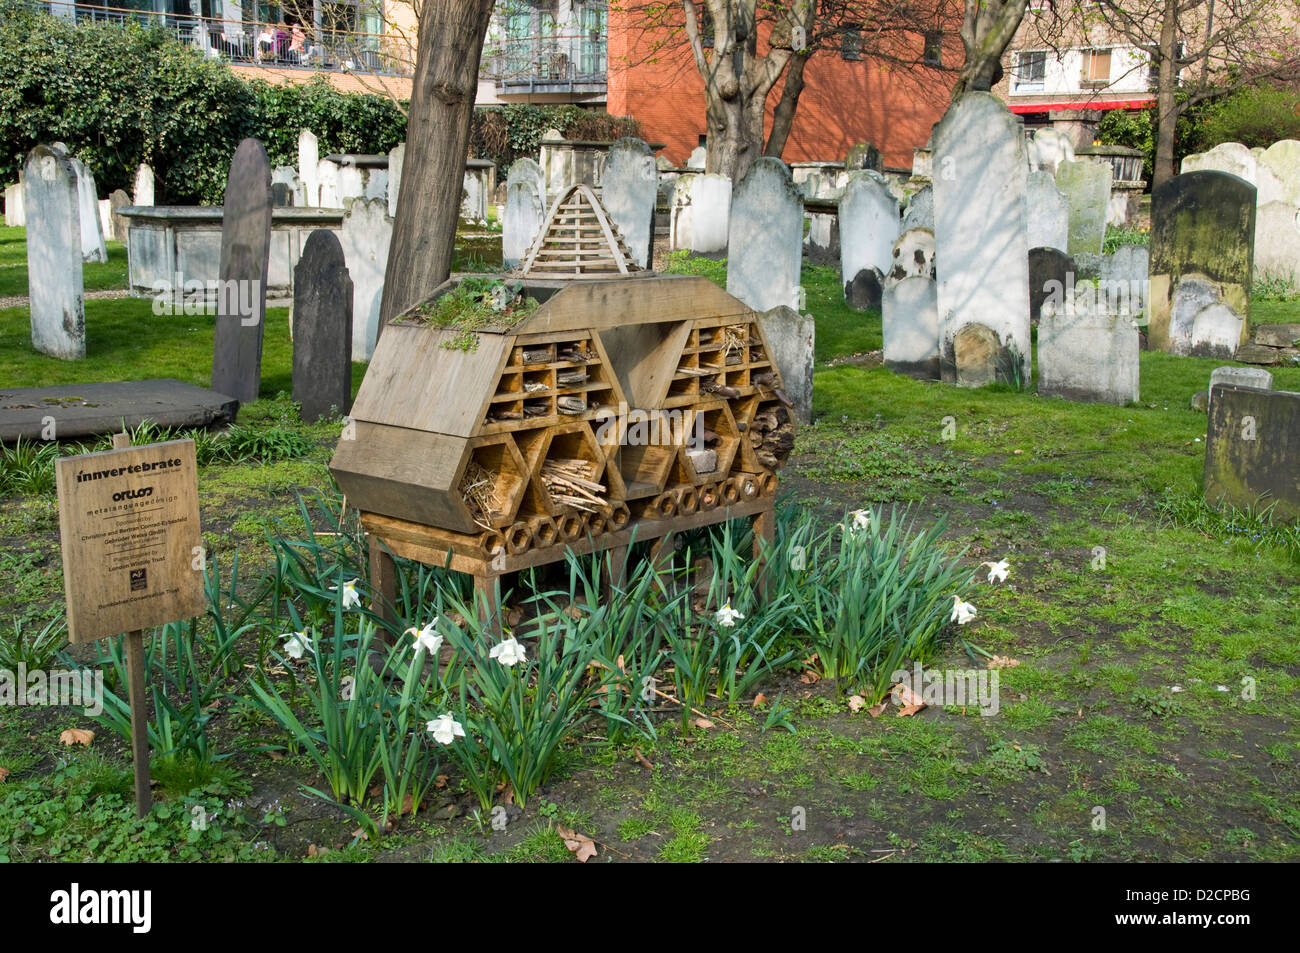 Invertebrate Bug Hotel or Insect House  situated amongst gravestones, Bunhill Fields Burial Ground - Stock Image